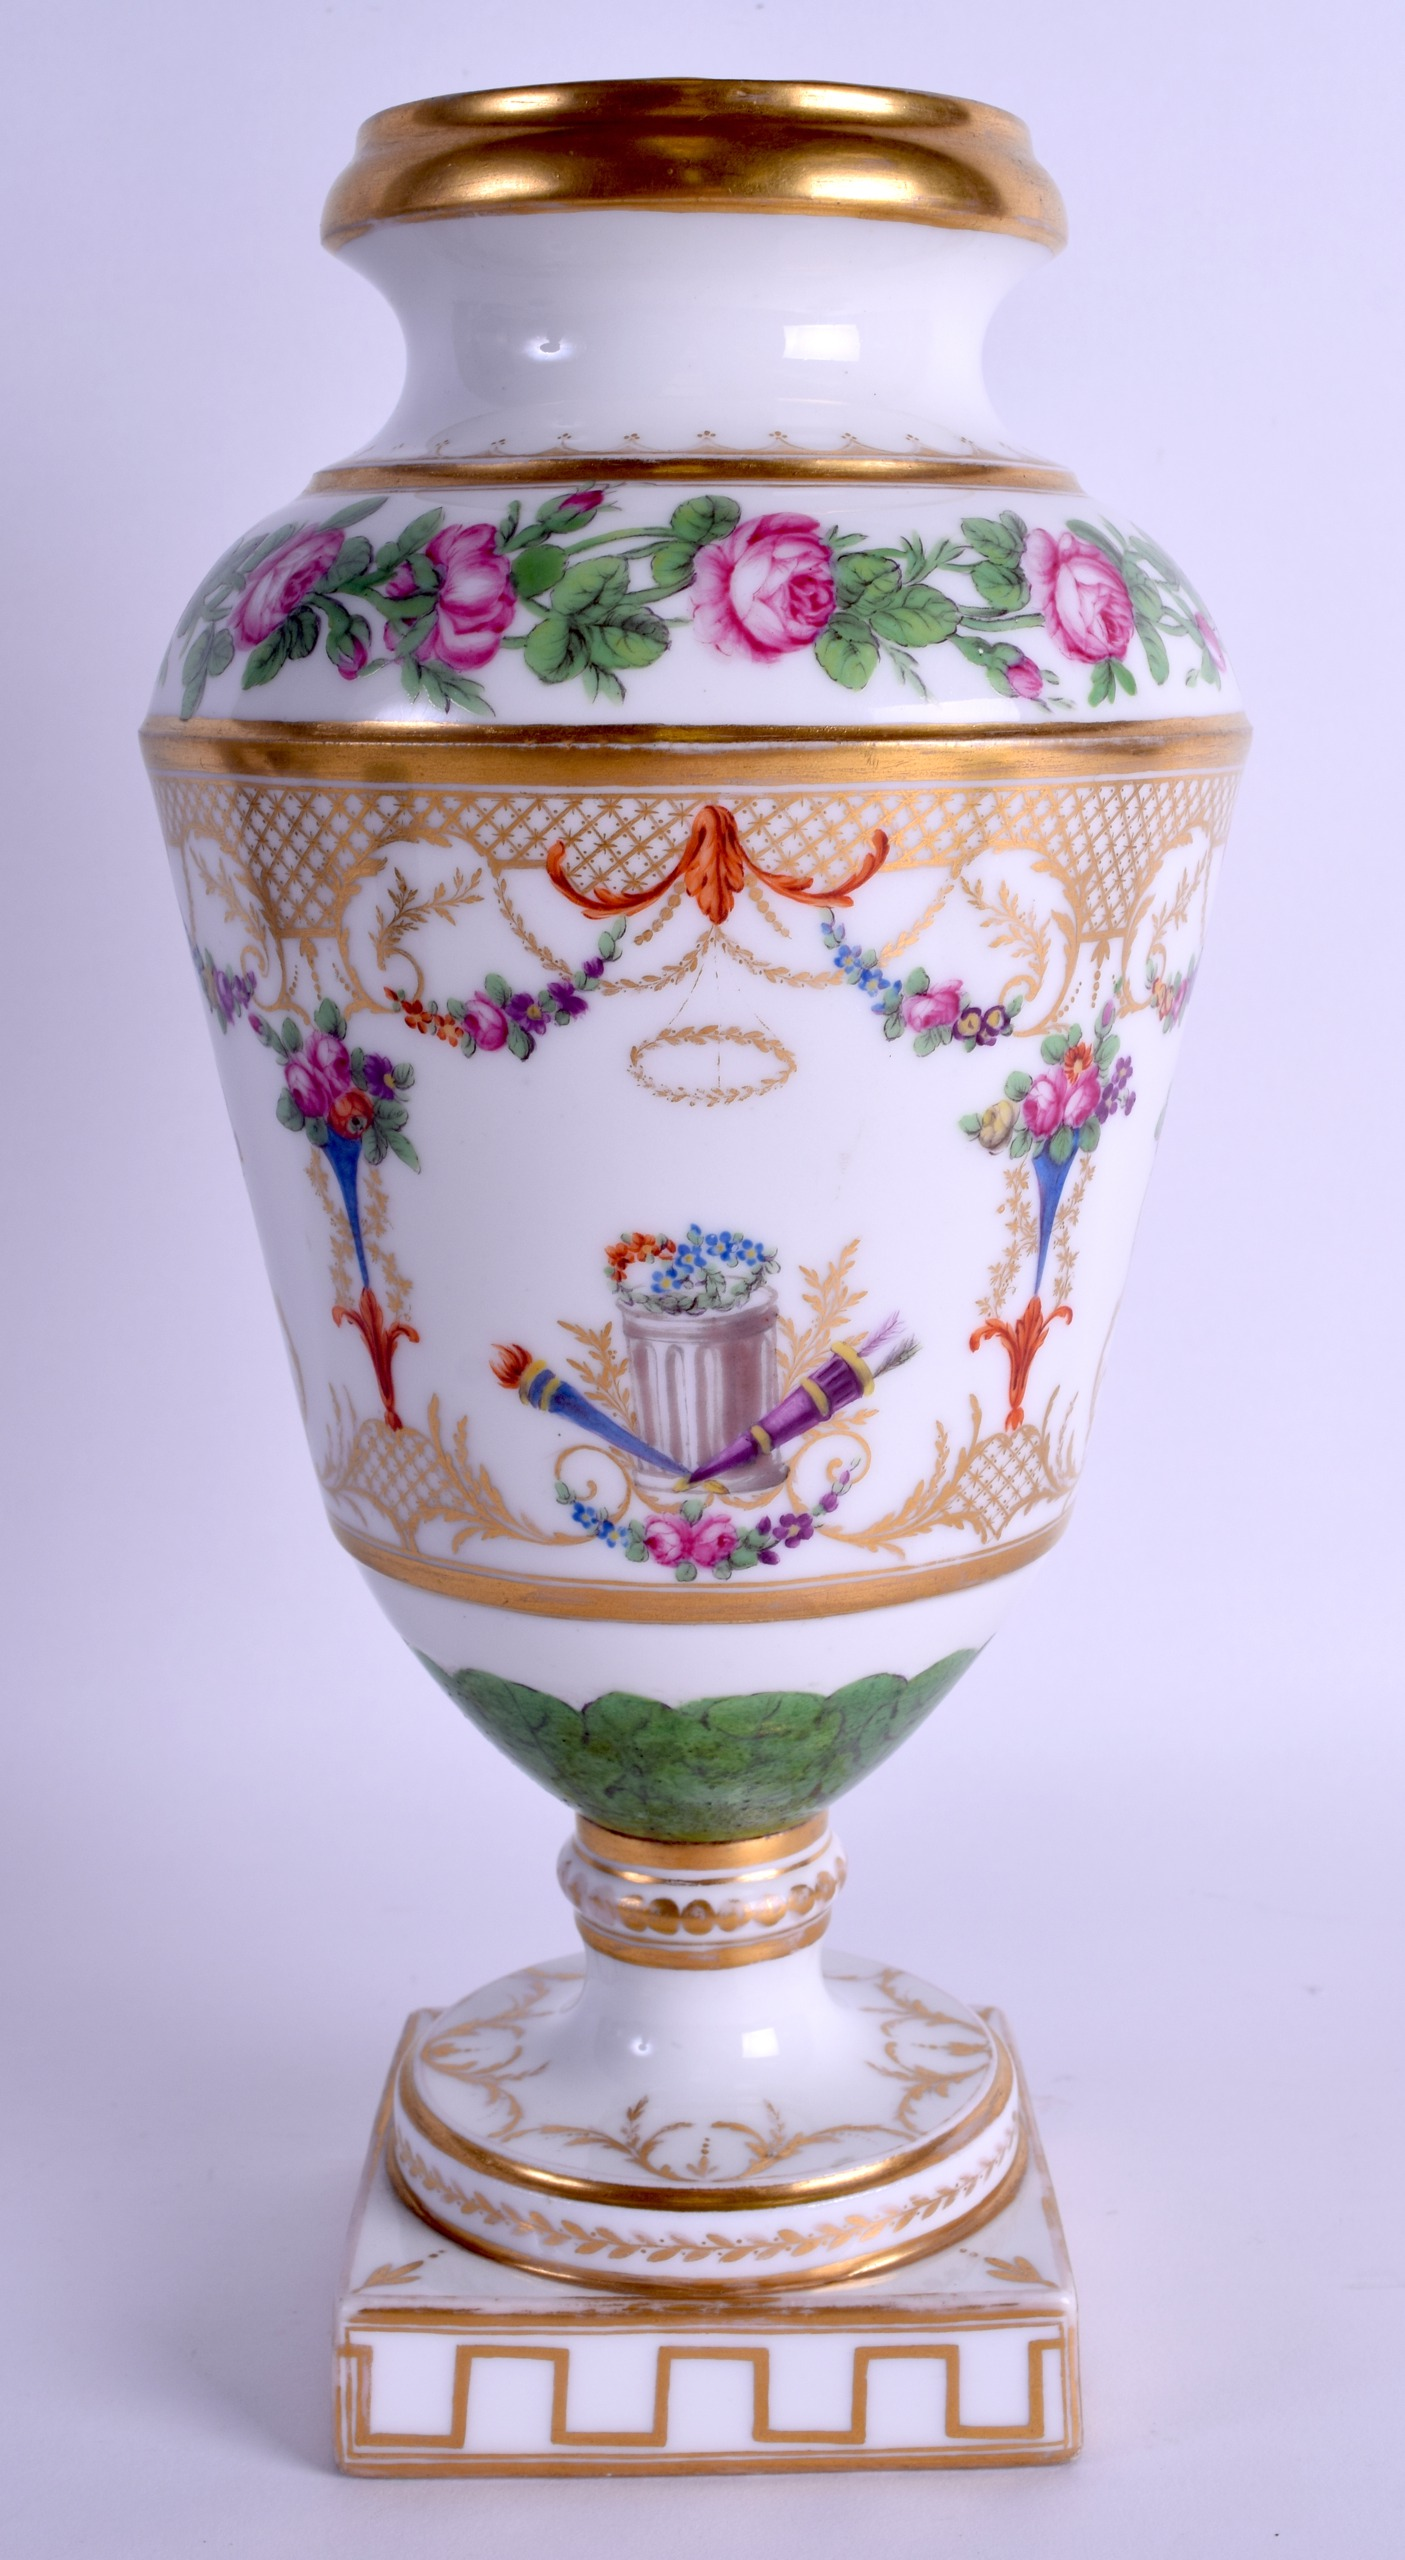 Lot 104 - AN EARLY 19TH CENTURY EUROPEAN PORCELAIN VASE painted with rows of roses within scrolling gilt